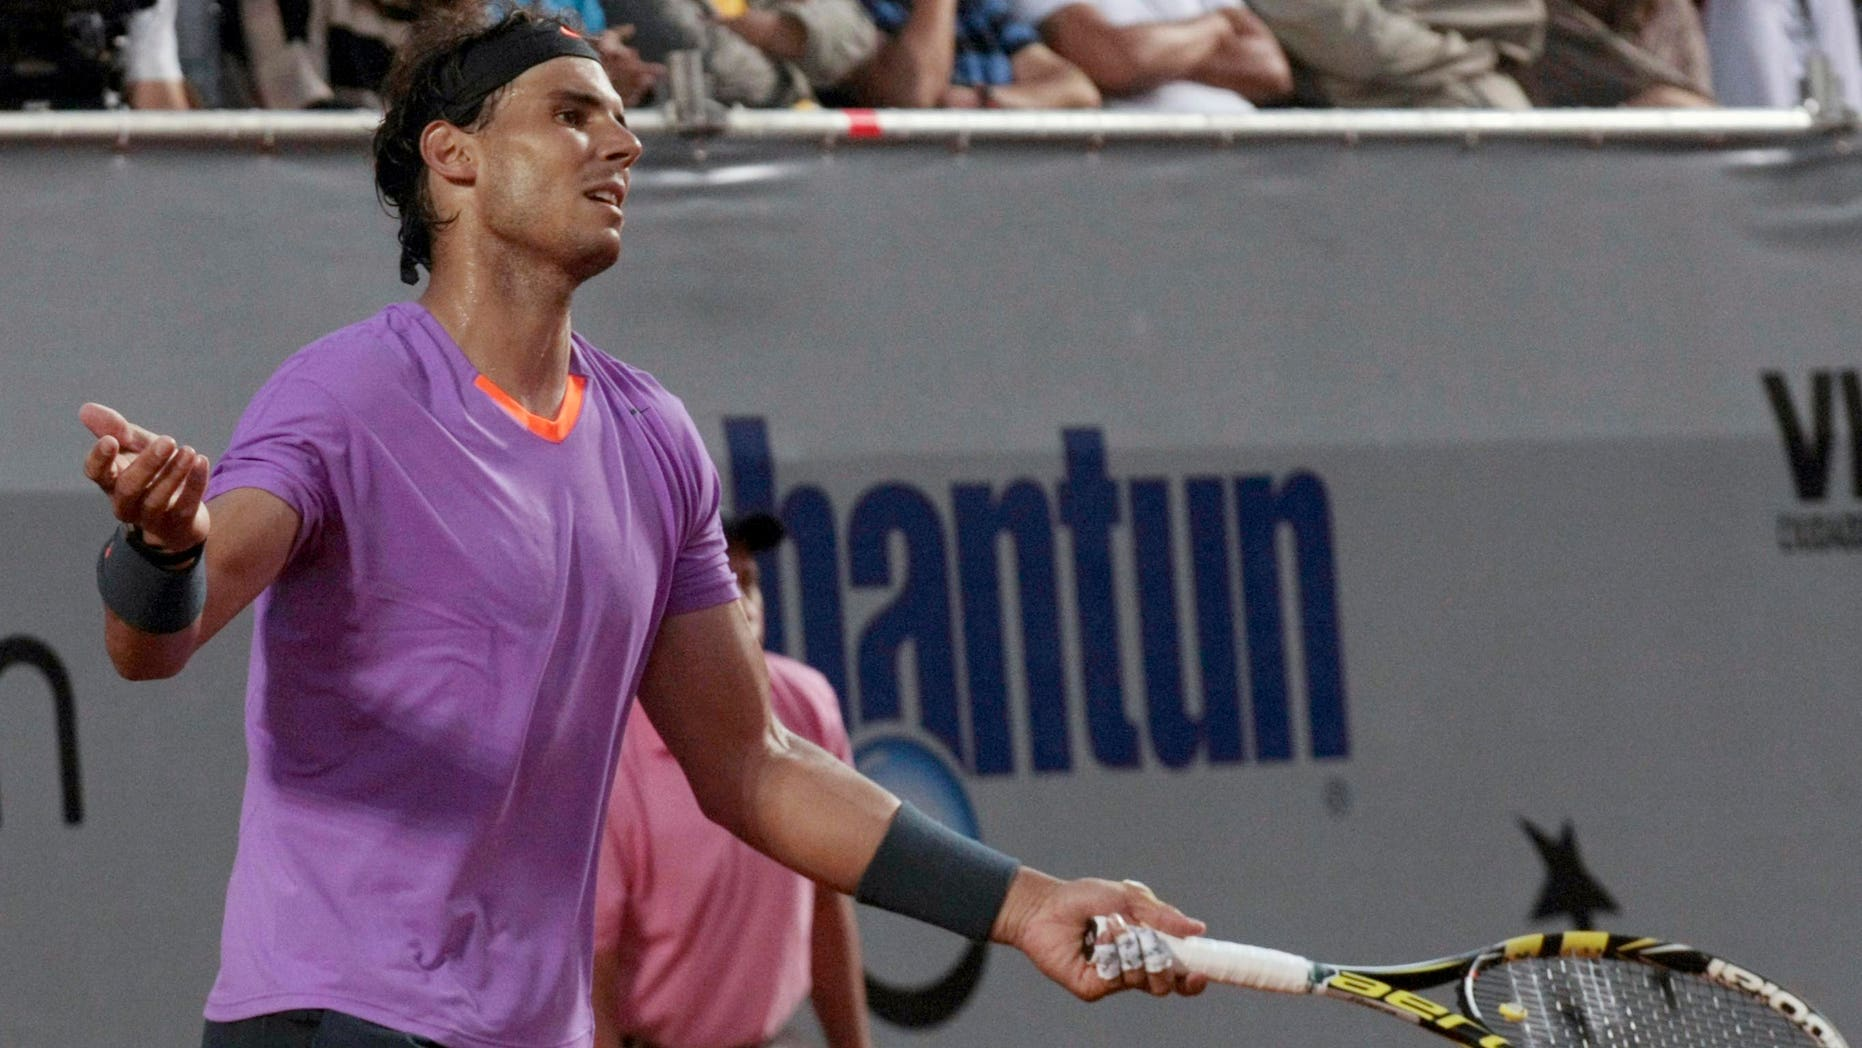 Spain's Rafael Nadal reacts during the VTR Open final tennis game against Argentina's Horacio Zeballos in Vina del Mar, Chile, Sunday, Feb. 10, 2013.